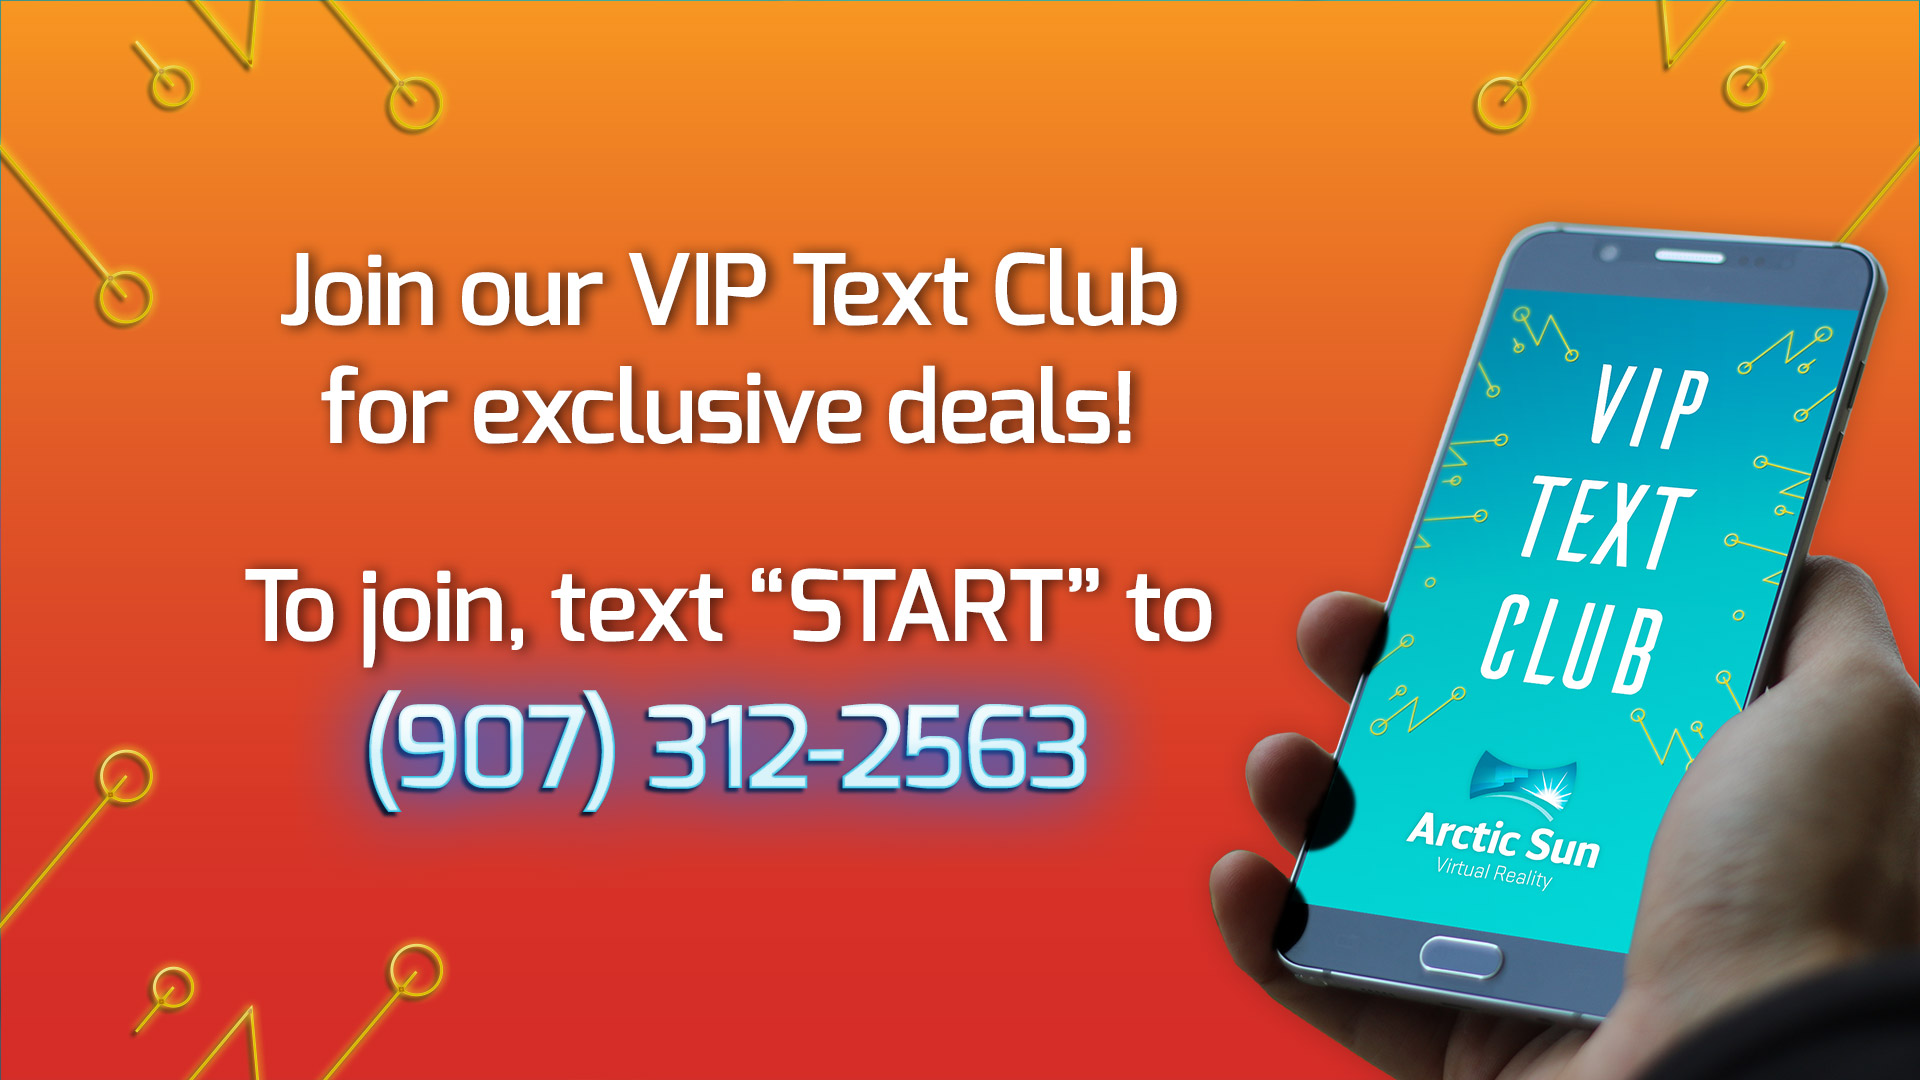 ArcticSunVR-Text-Club-2.jpg